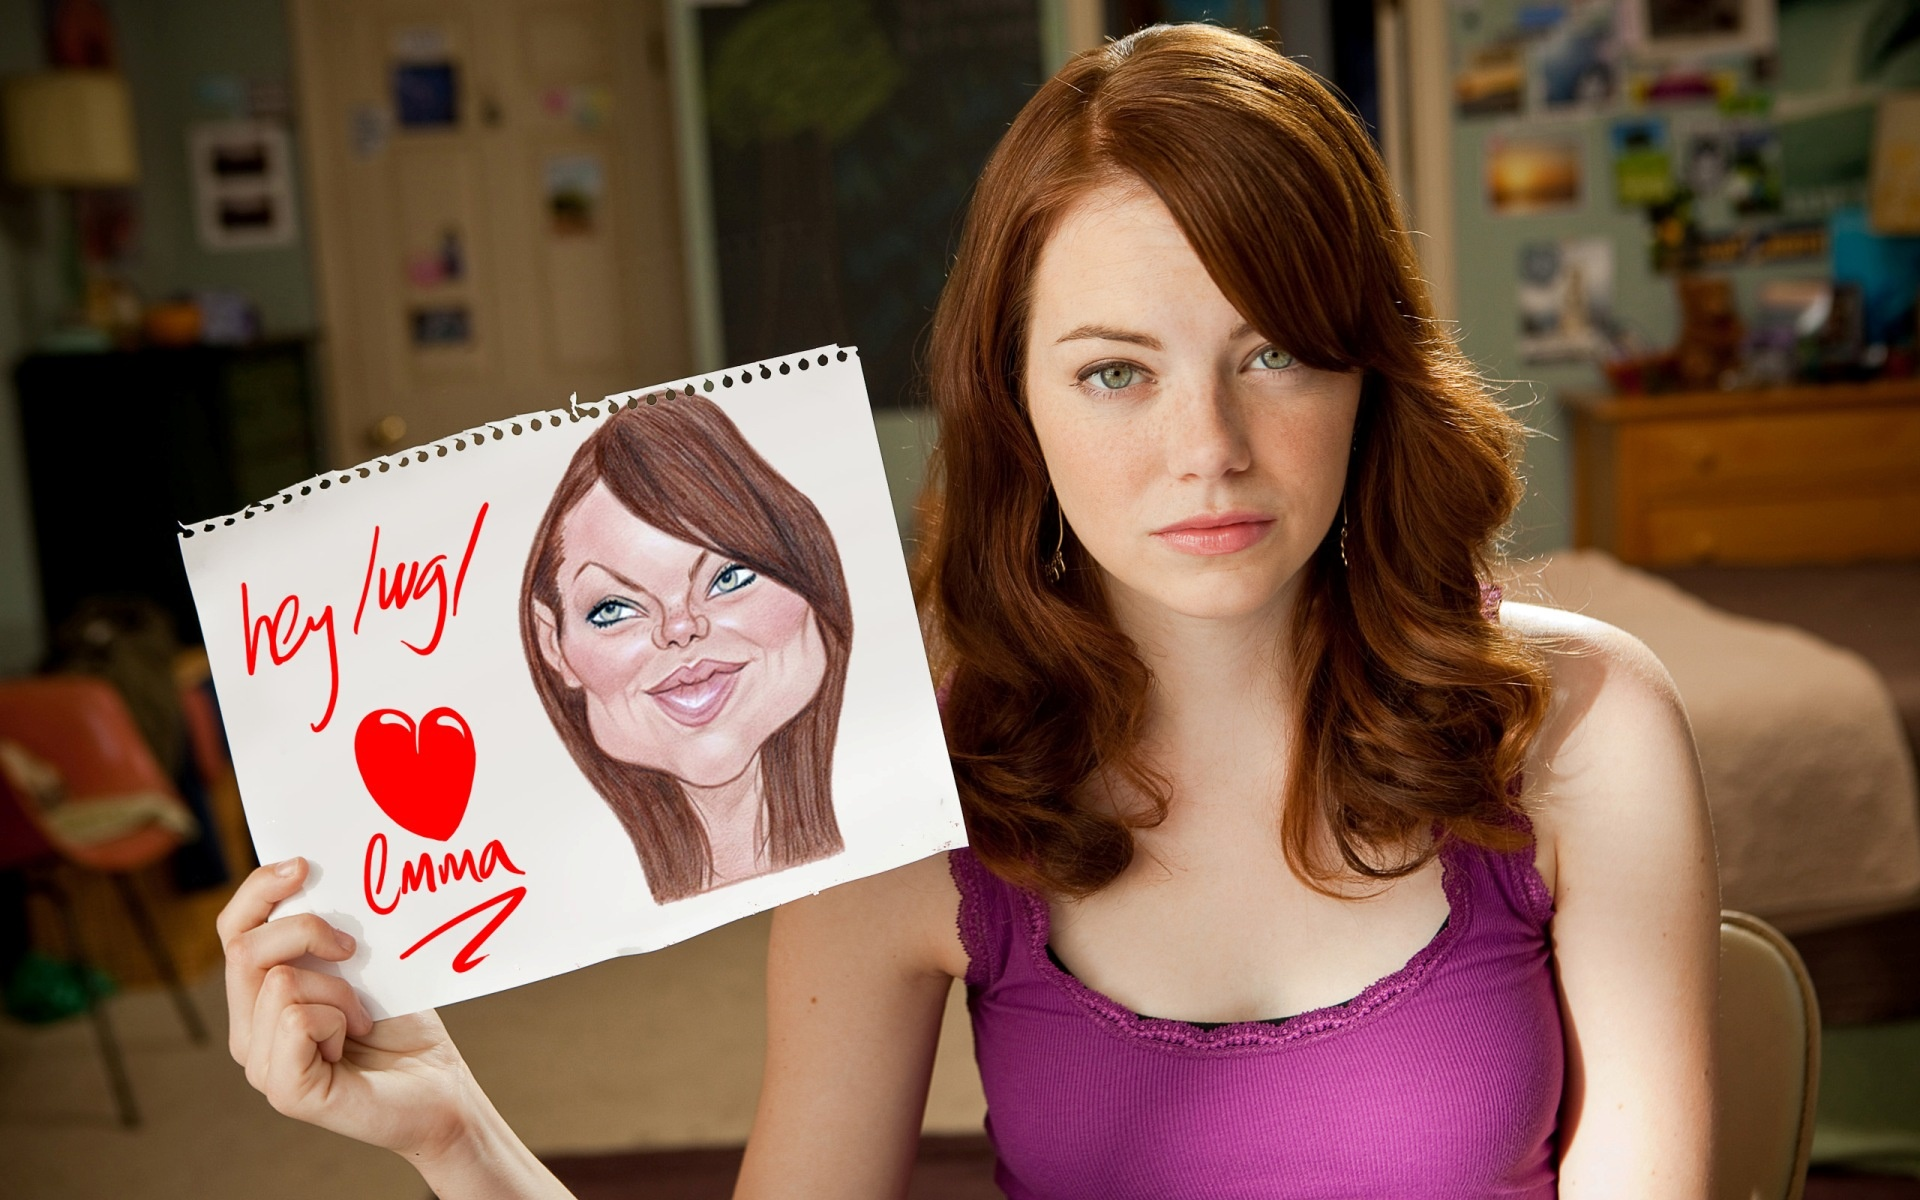 easy a the movie v s scarlet The embedded radio rookies piece from npr, below, the movie easy a and the article slut shaming: a new social media phenomenon, written by a high school student for a san diego school newspaper, are just three that draw lines between the two how familiar is the slut-shaming phenomenon to you.